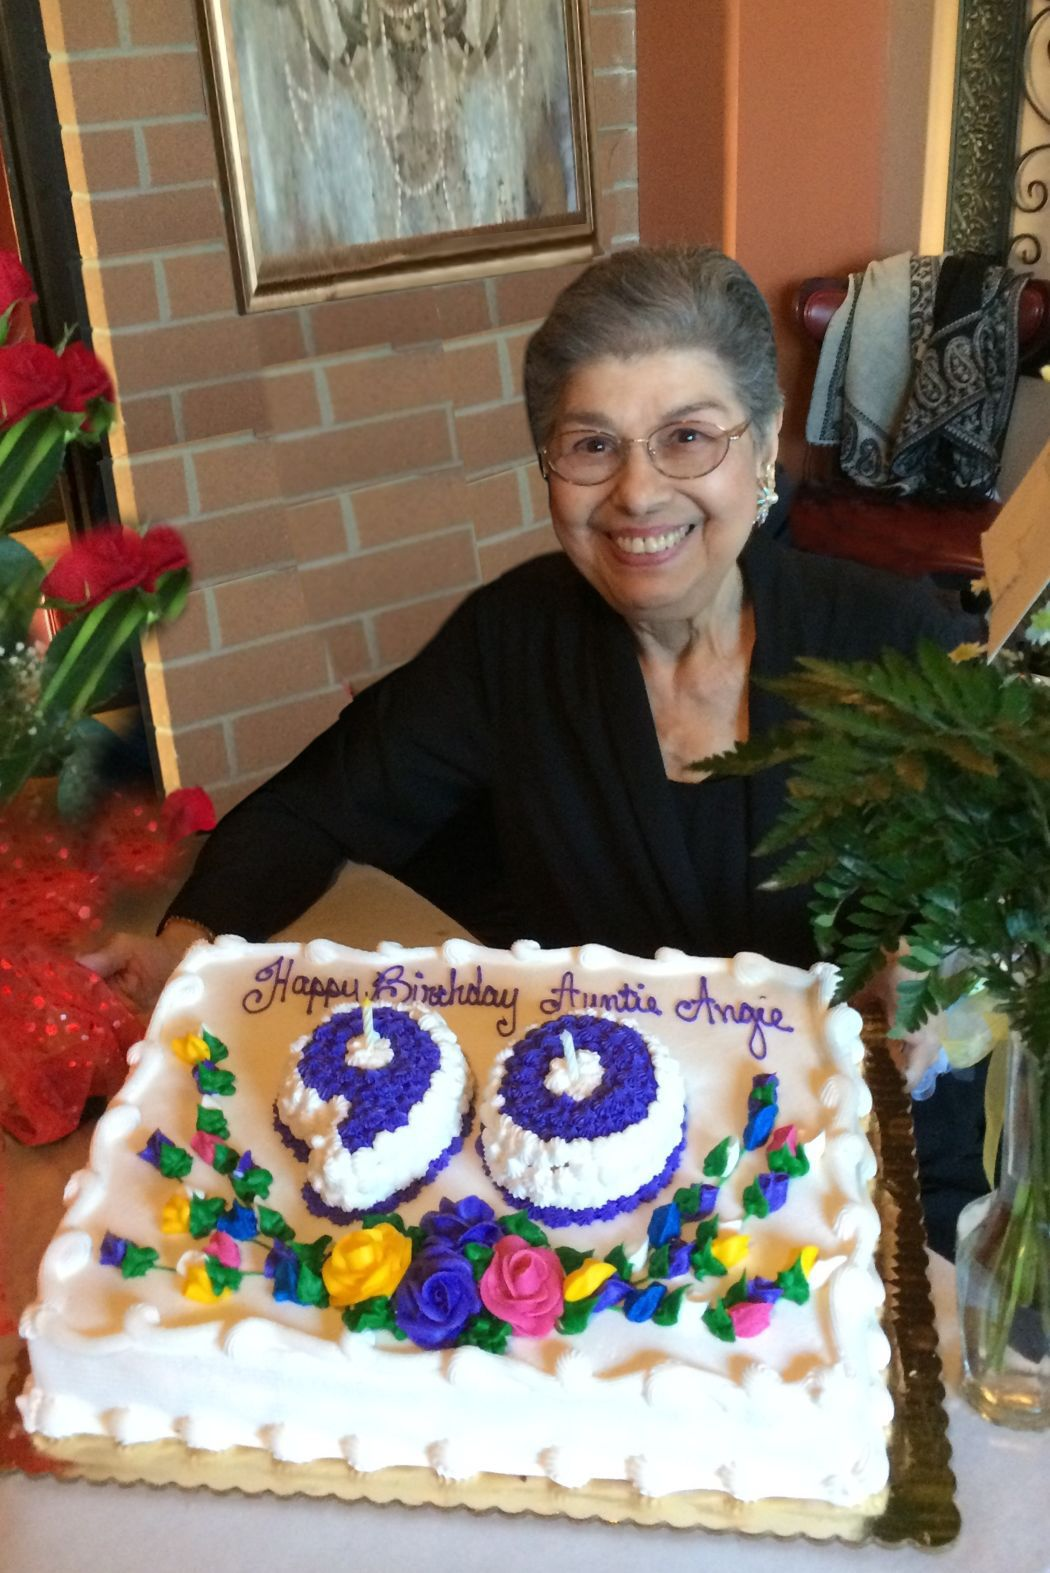 Look who turned 90!